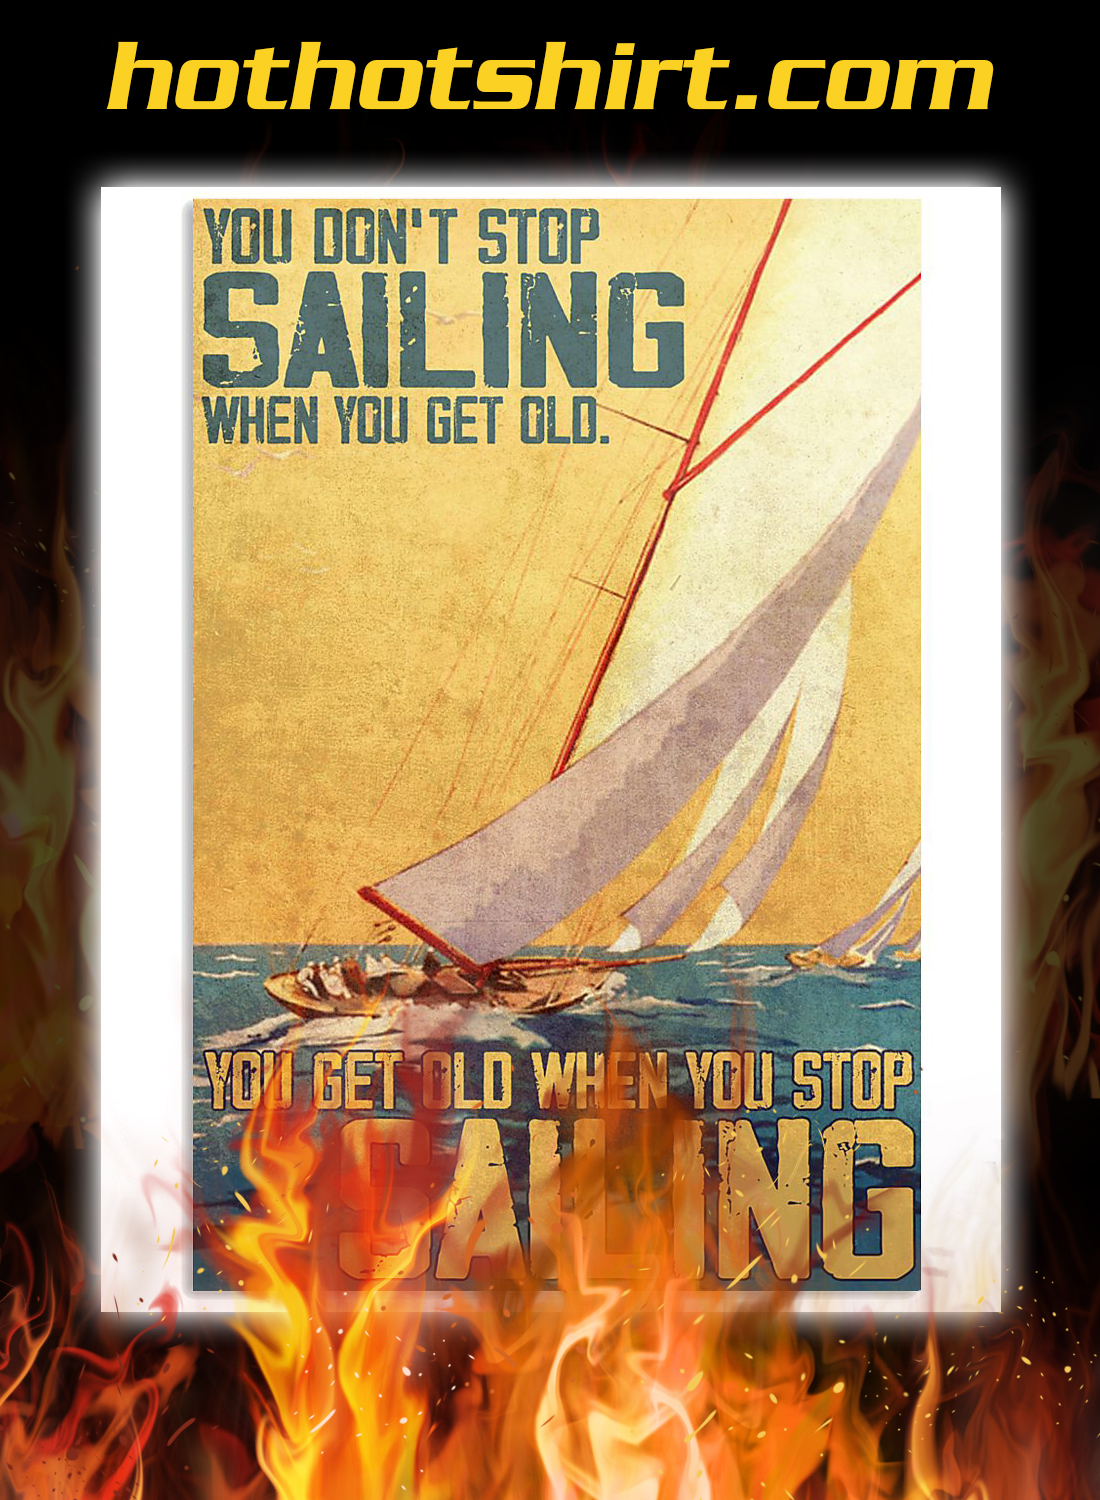 You don't stop sailing when you get old you get old when you stop sailing poster - A2